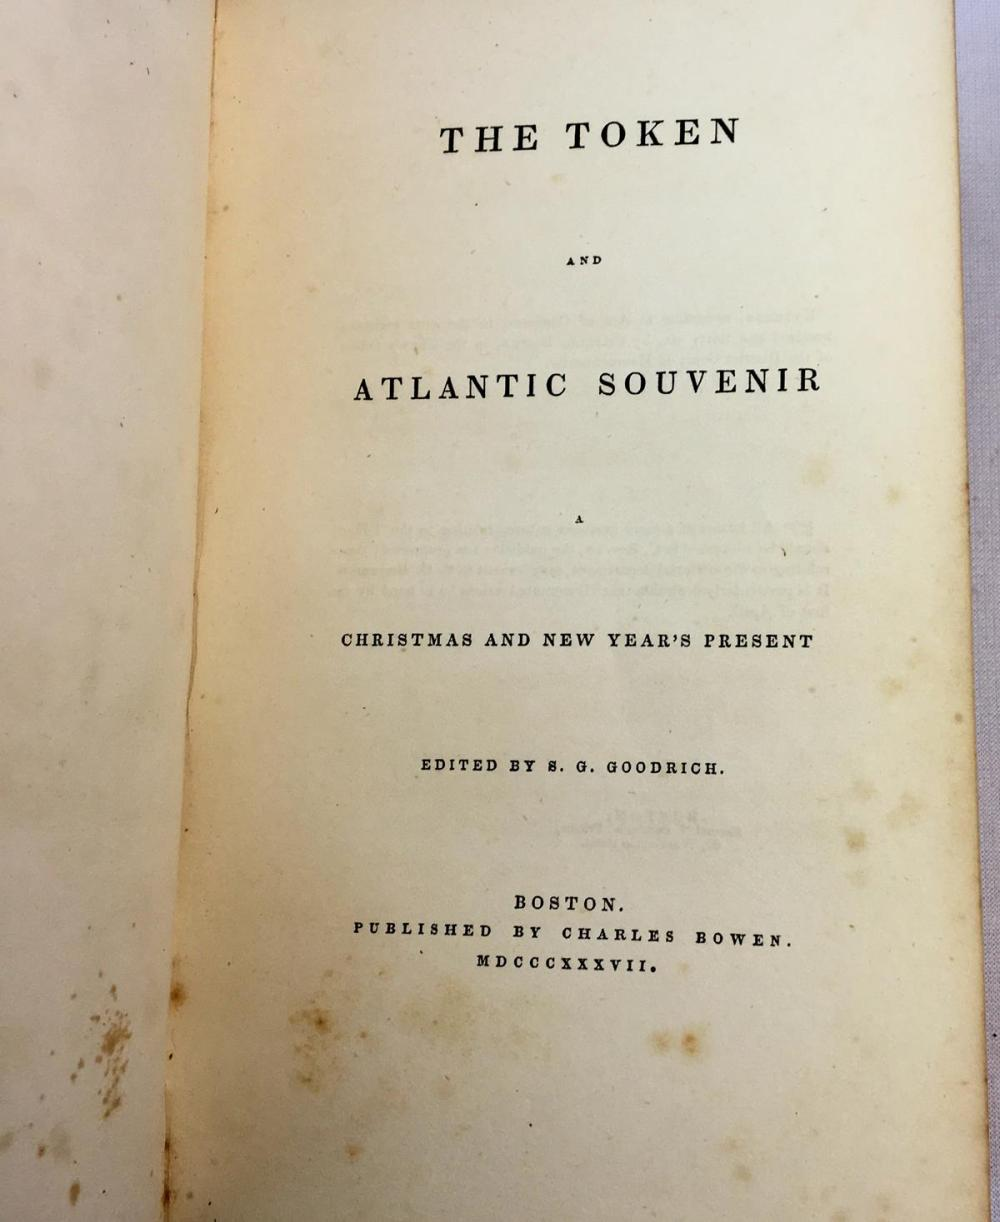 1837 The Token and Atlantic Souvenir: A Christmas and New Year's Present ILLUSTRATED